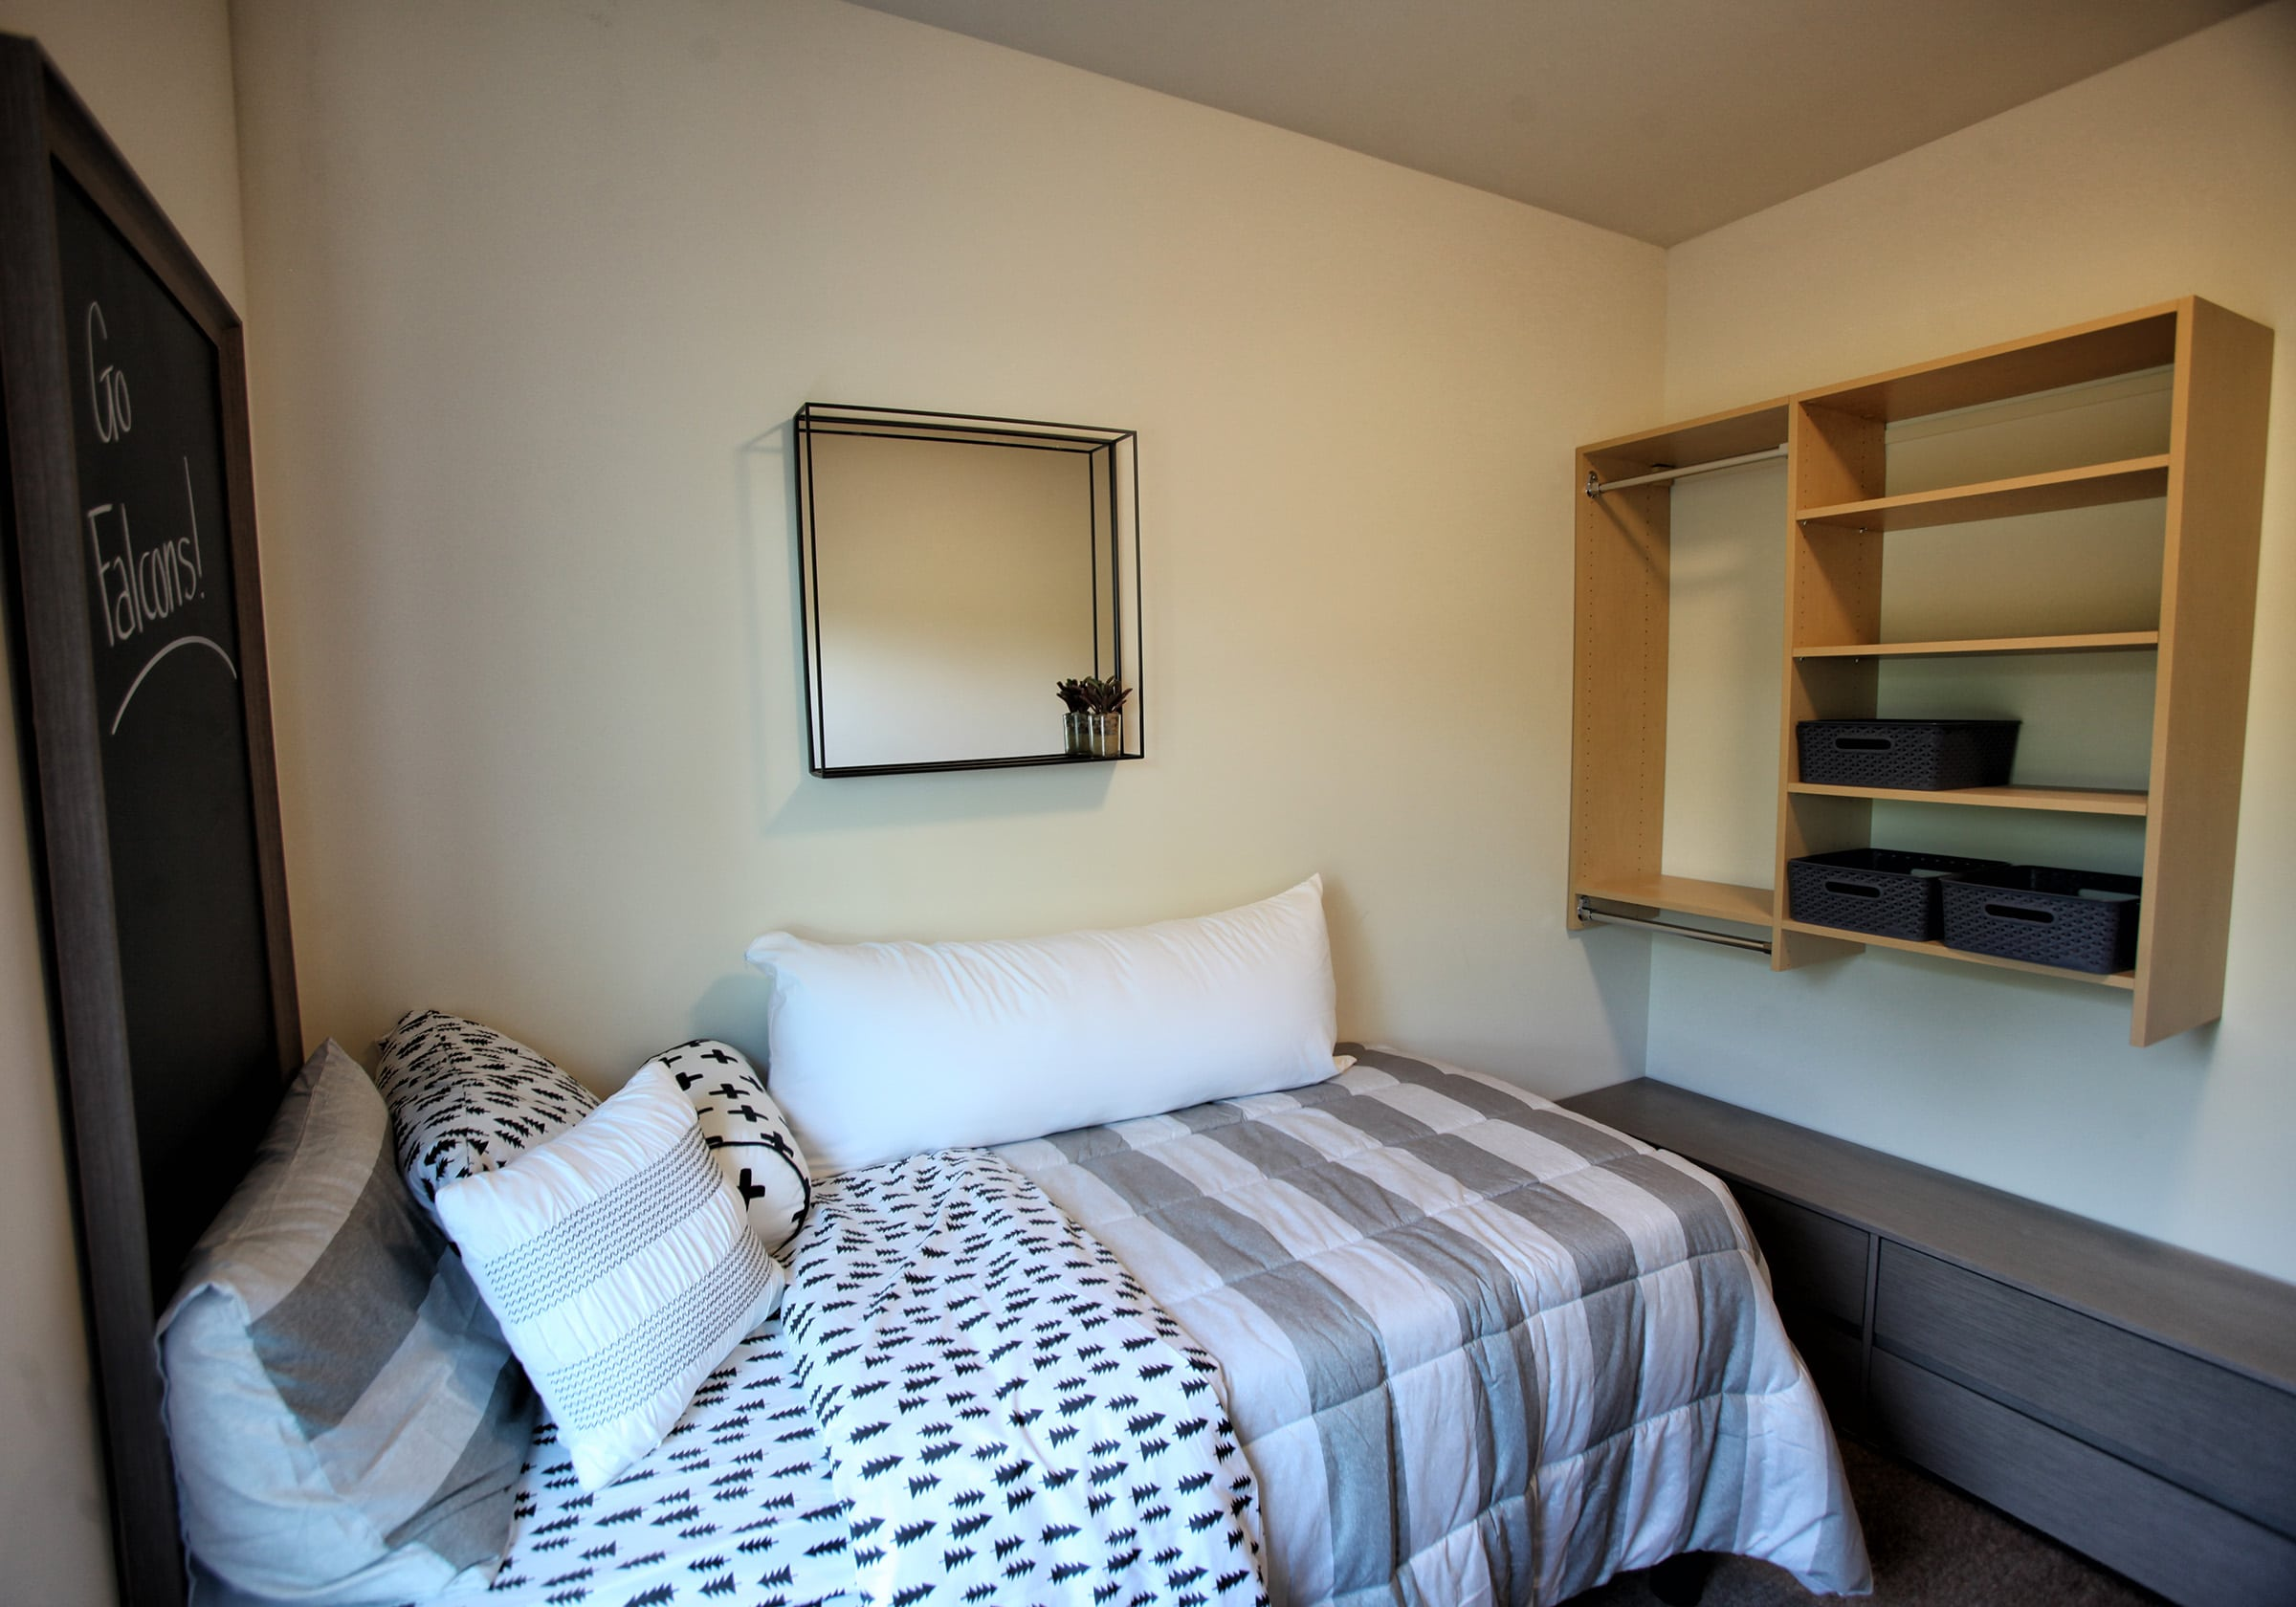 Vue bedroom with shelf on wall and bed